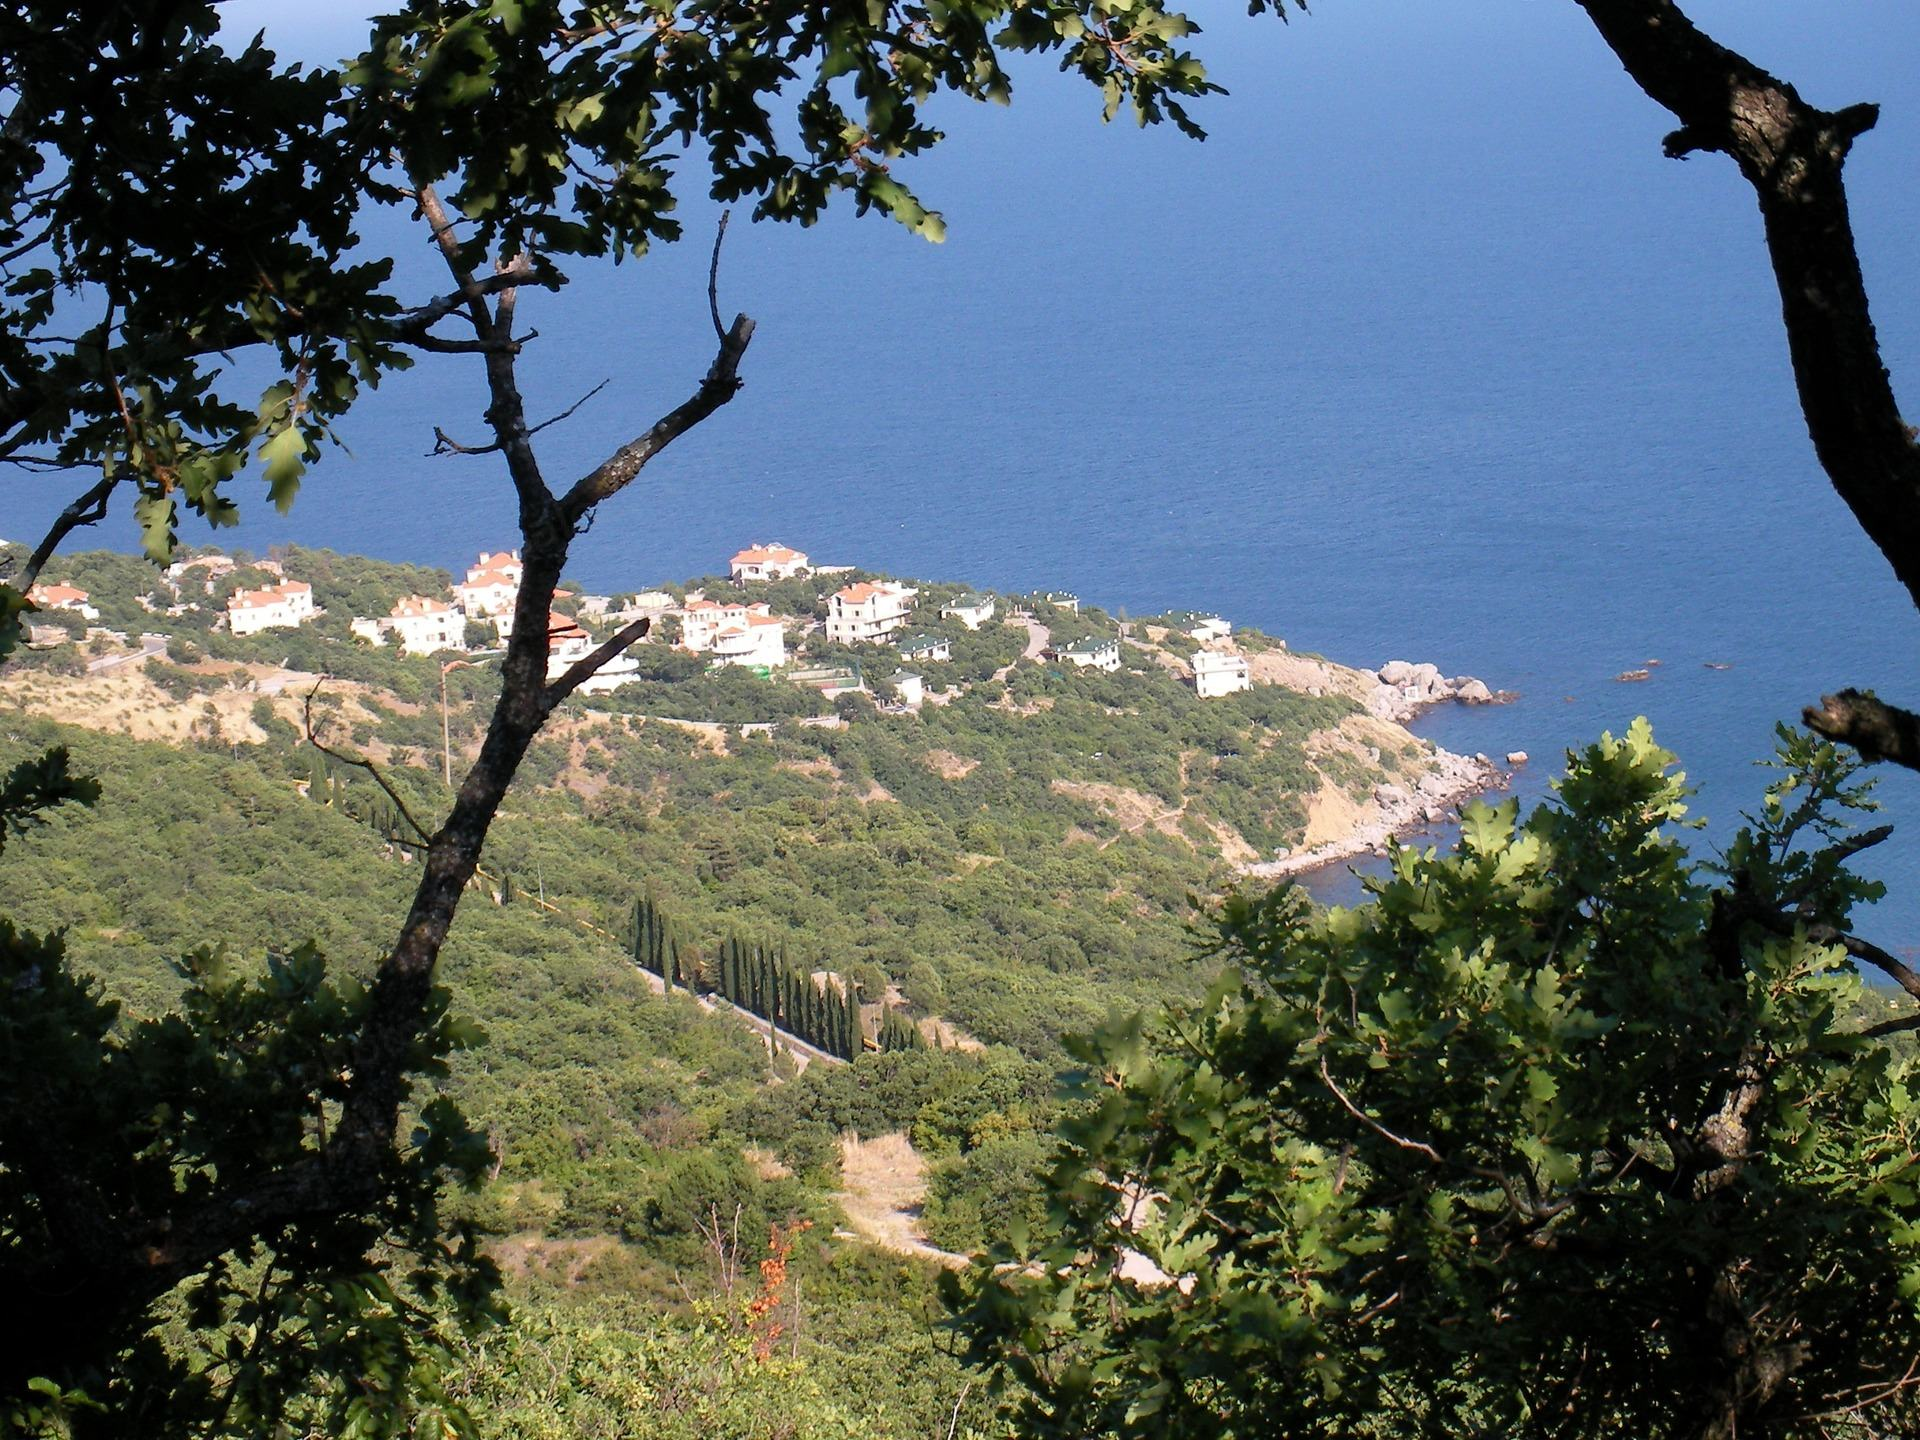 The south coast of Crimea